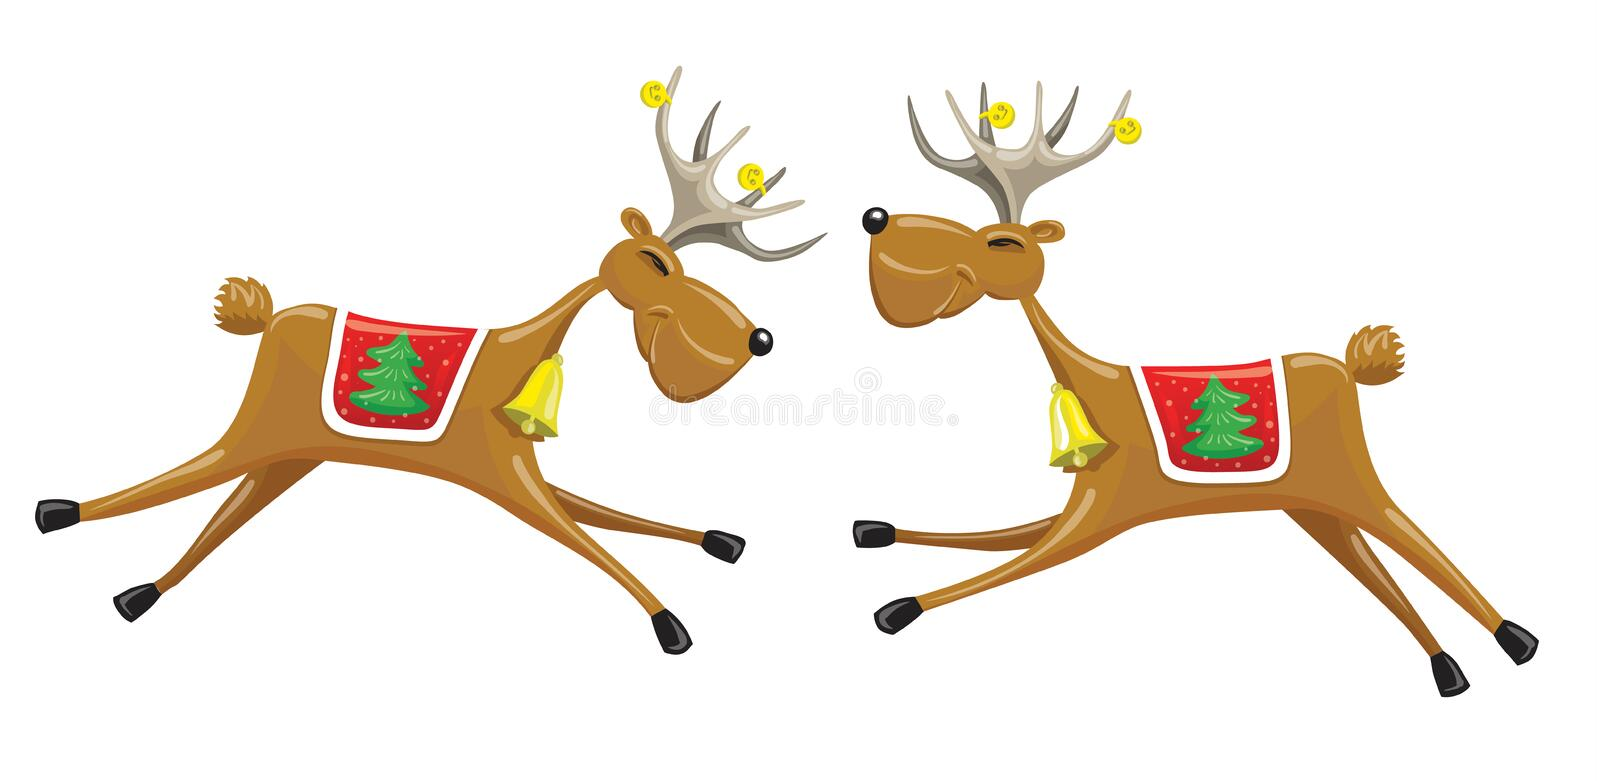 Two Christmas reindeers royalty free illustration